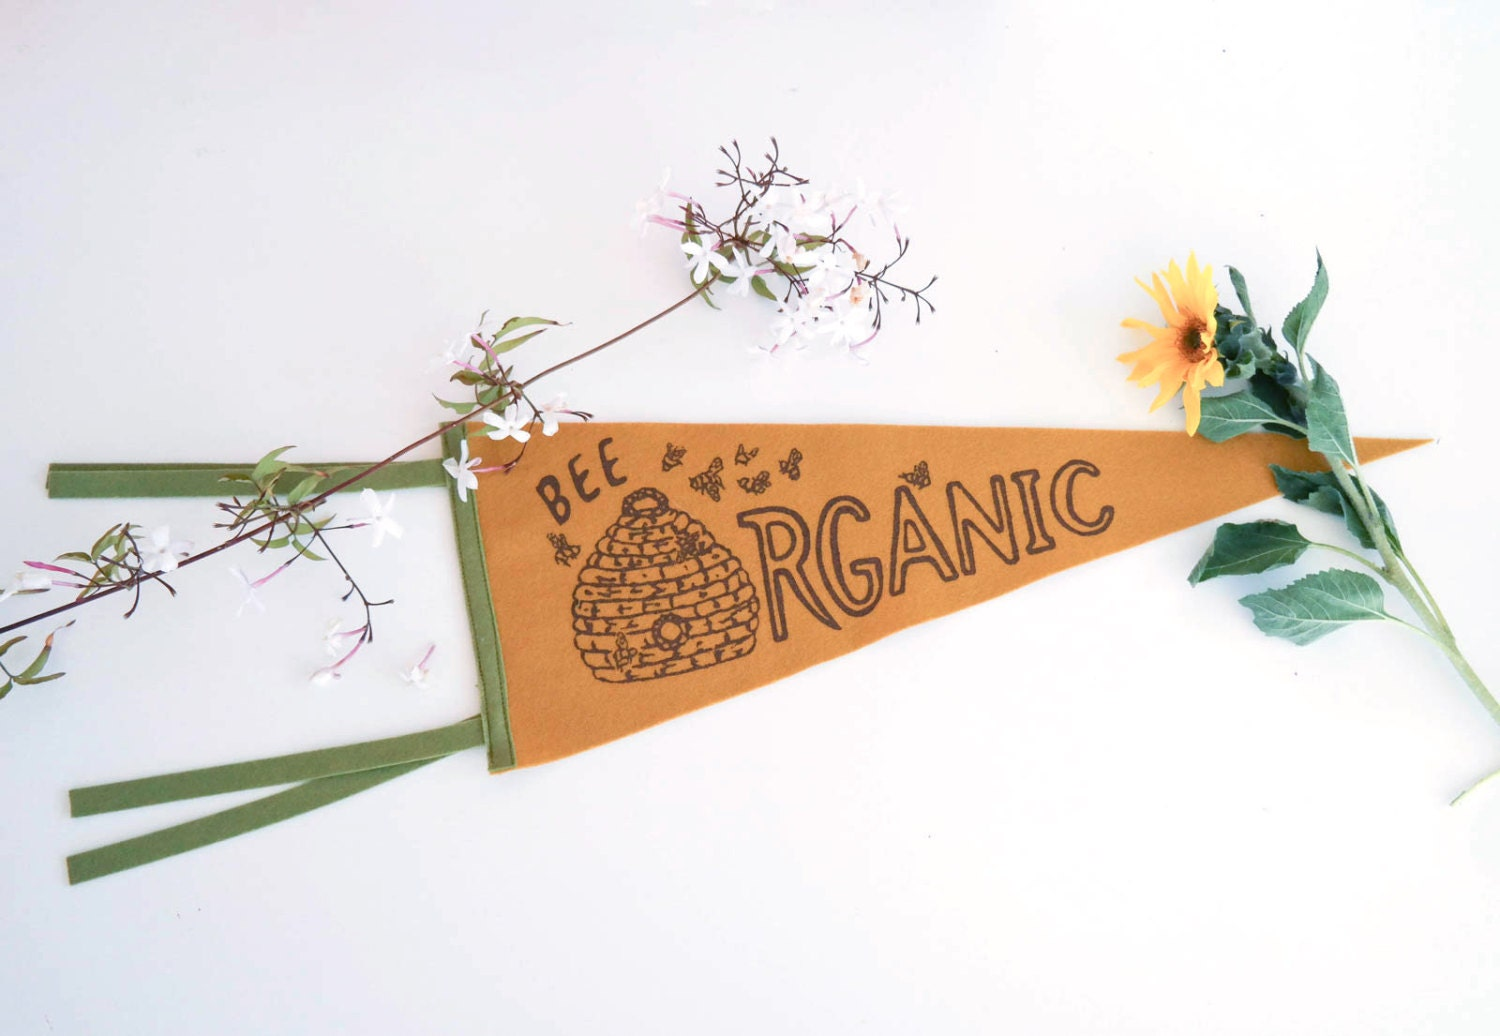 Felt pennant: Bee Organic available on Etsy | by Kate Wong stripedcatstudio.com